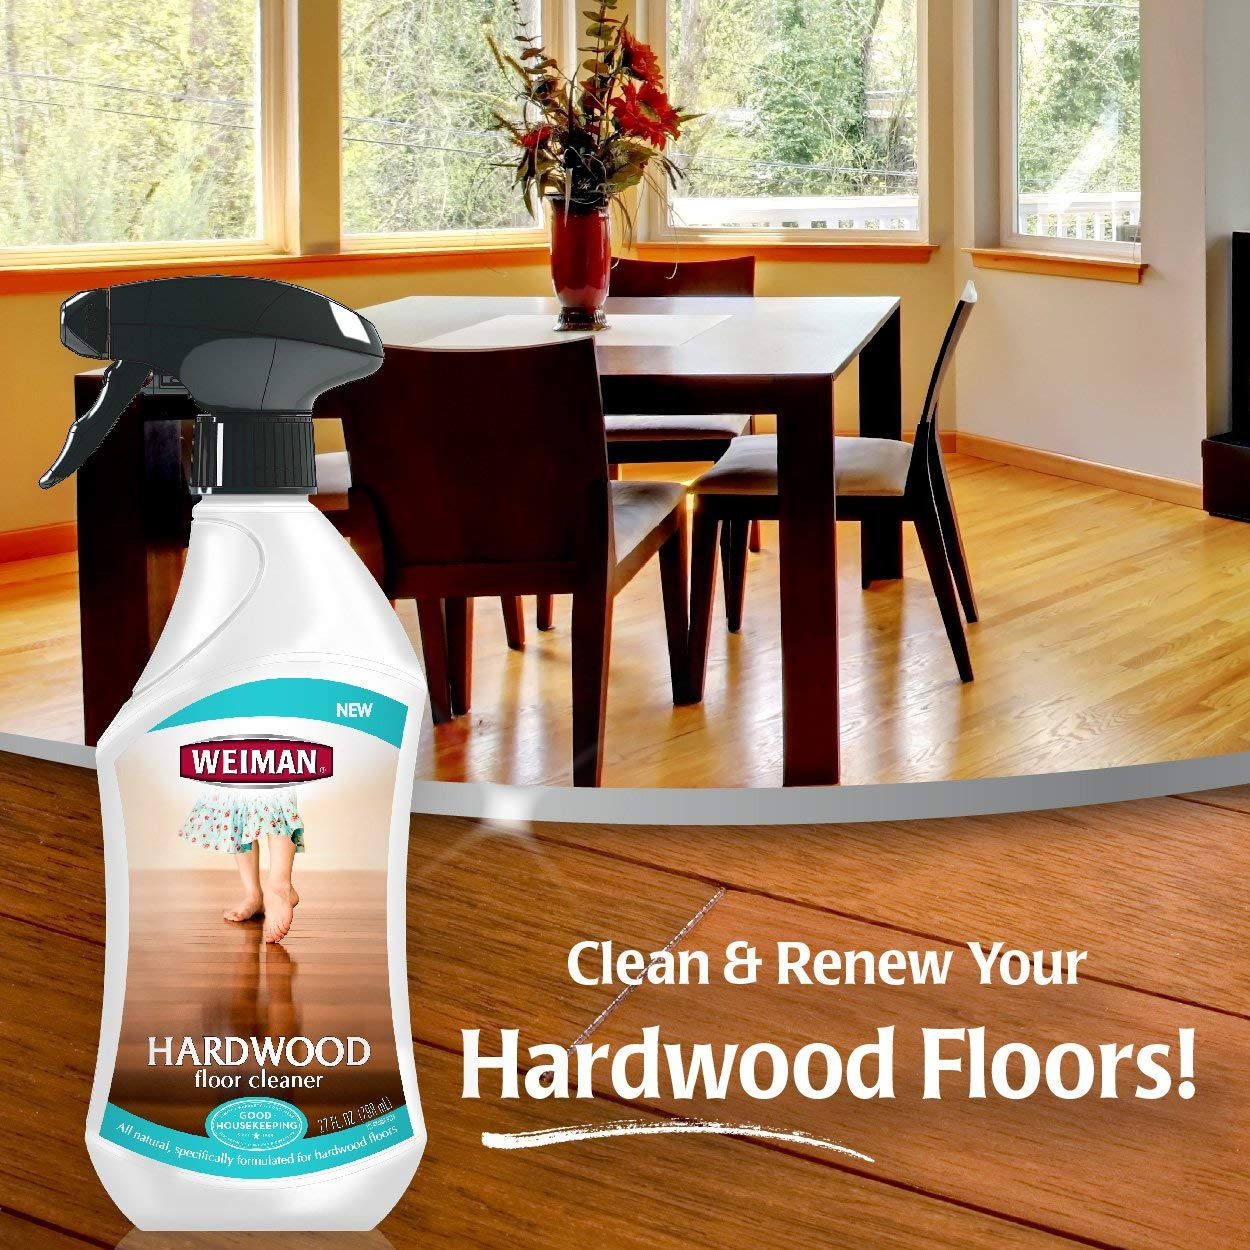 glue down hardwood floor problems of amazon com weiman hardwood floor cleaner surface safe no harsh throughout amazon com weiman hardwood floor cleaner surface safe no harsh scent safe for use around kids and pets residue free 27 oz trigger home kitchen